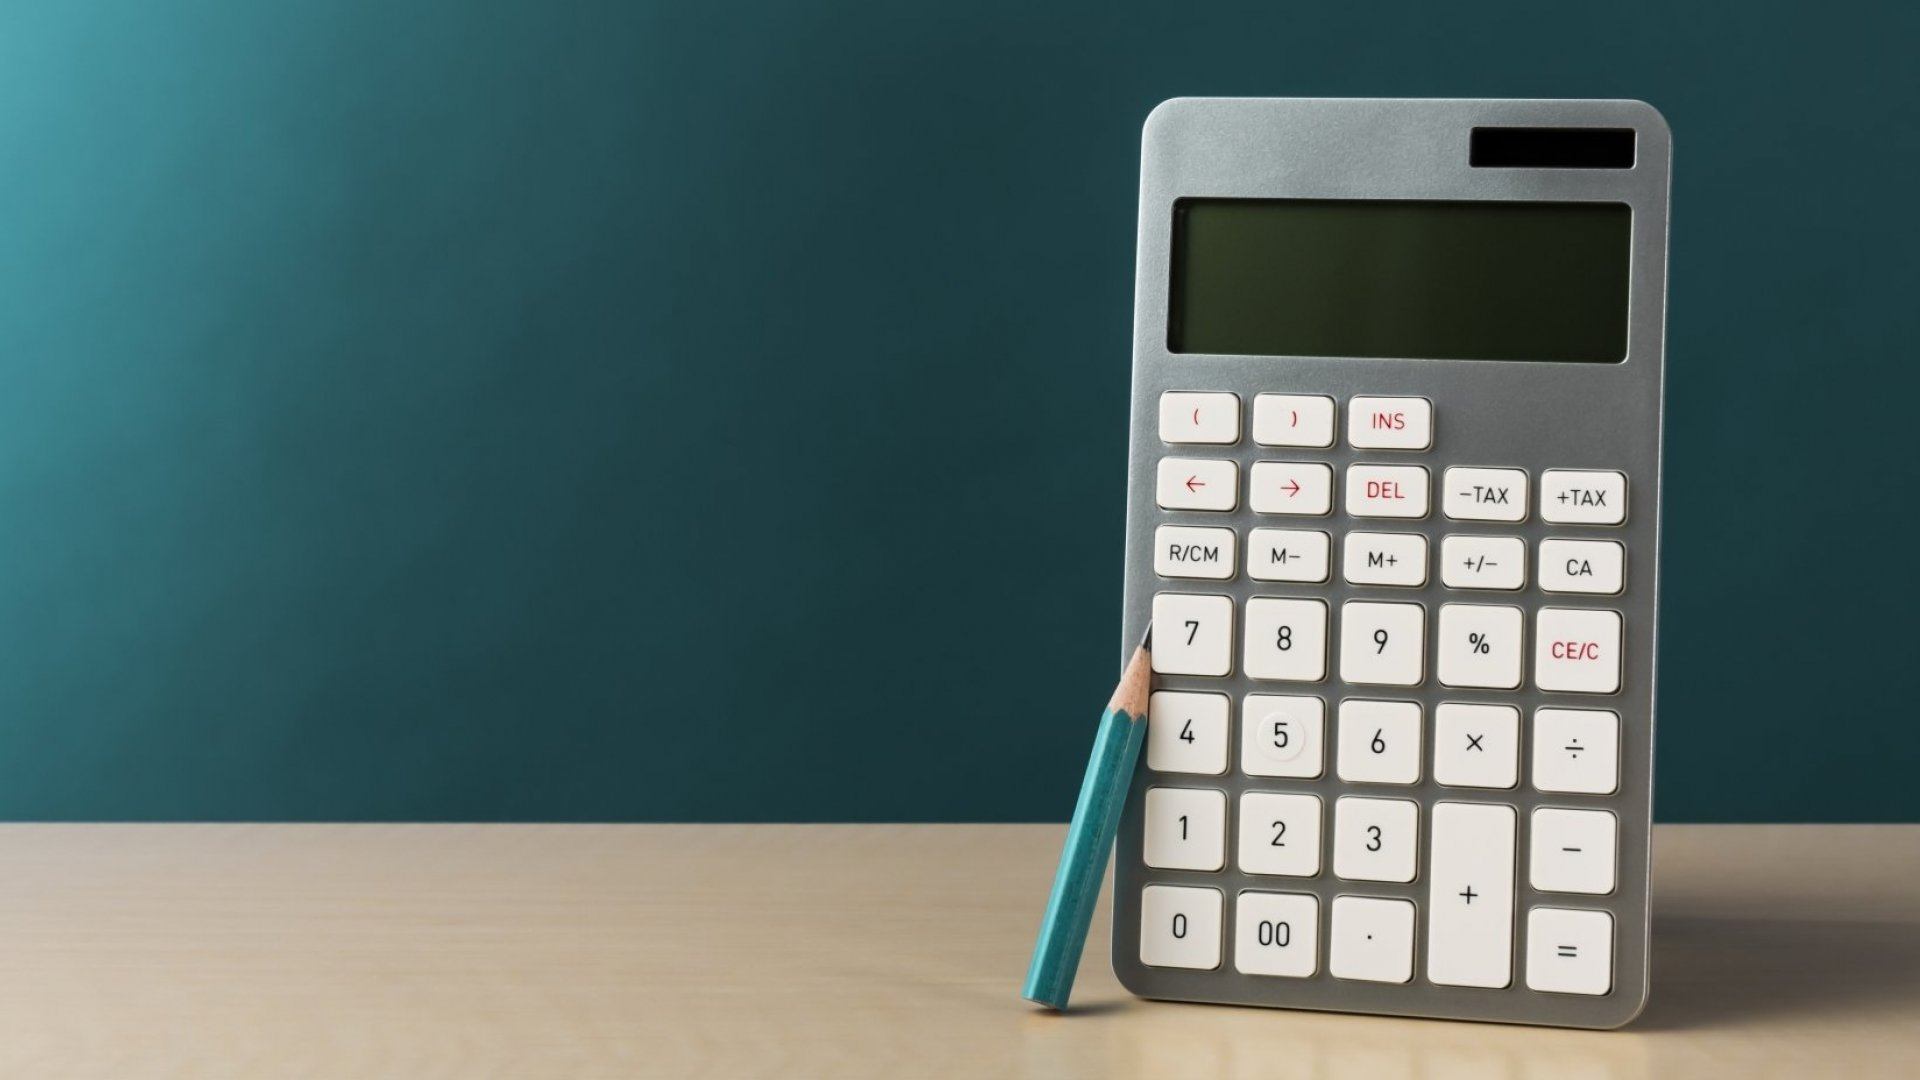 The Complete Checklist You Need to File Your Small Business Taxes Accurately and on Time